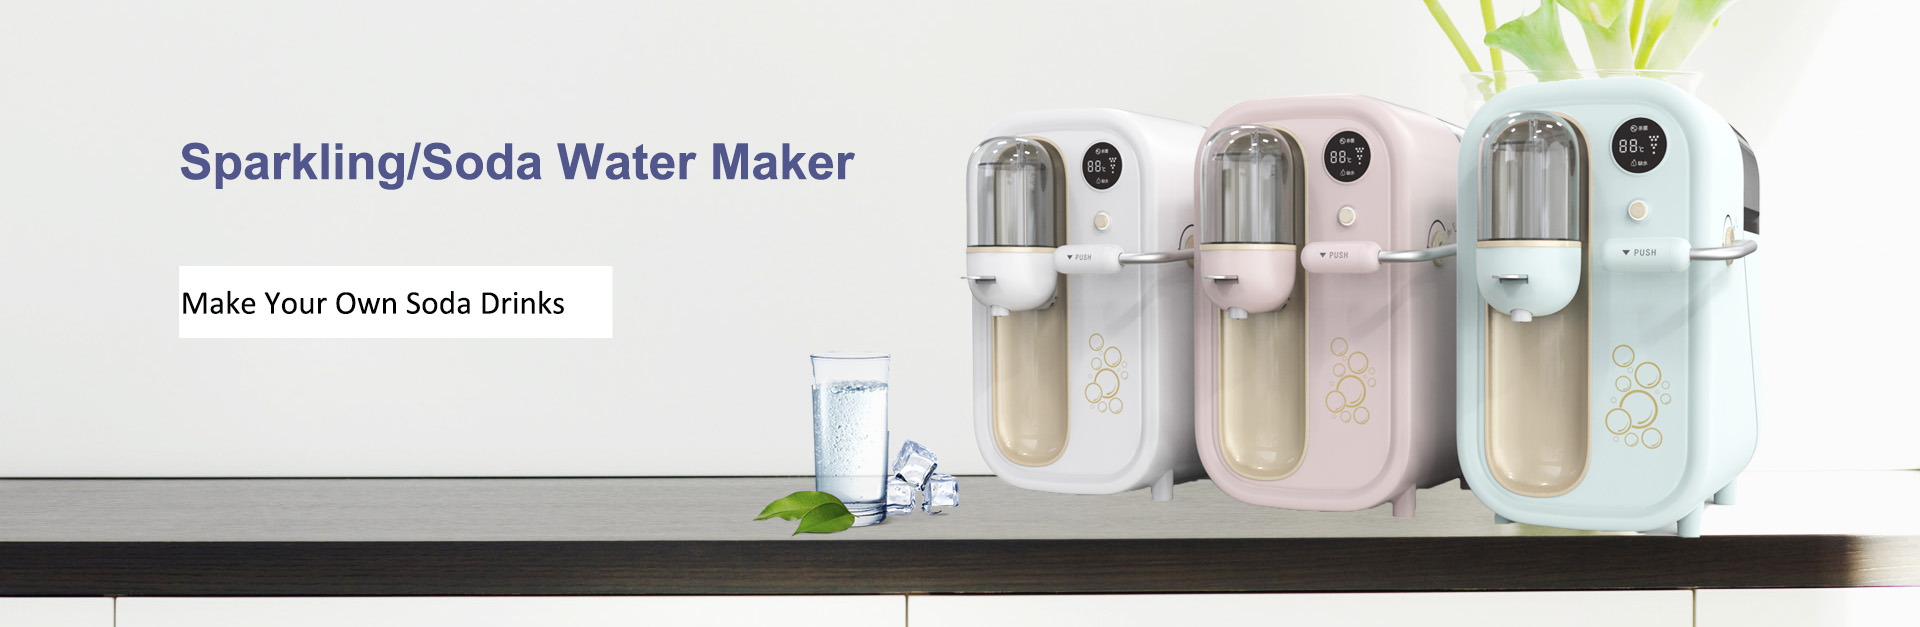 Sparkling Soda Water Maker